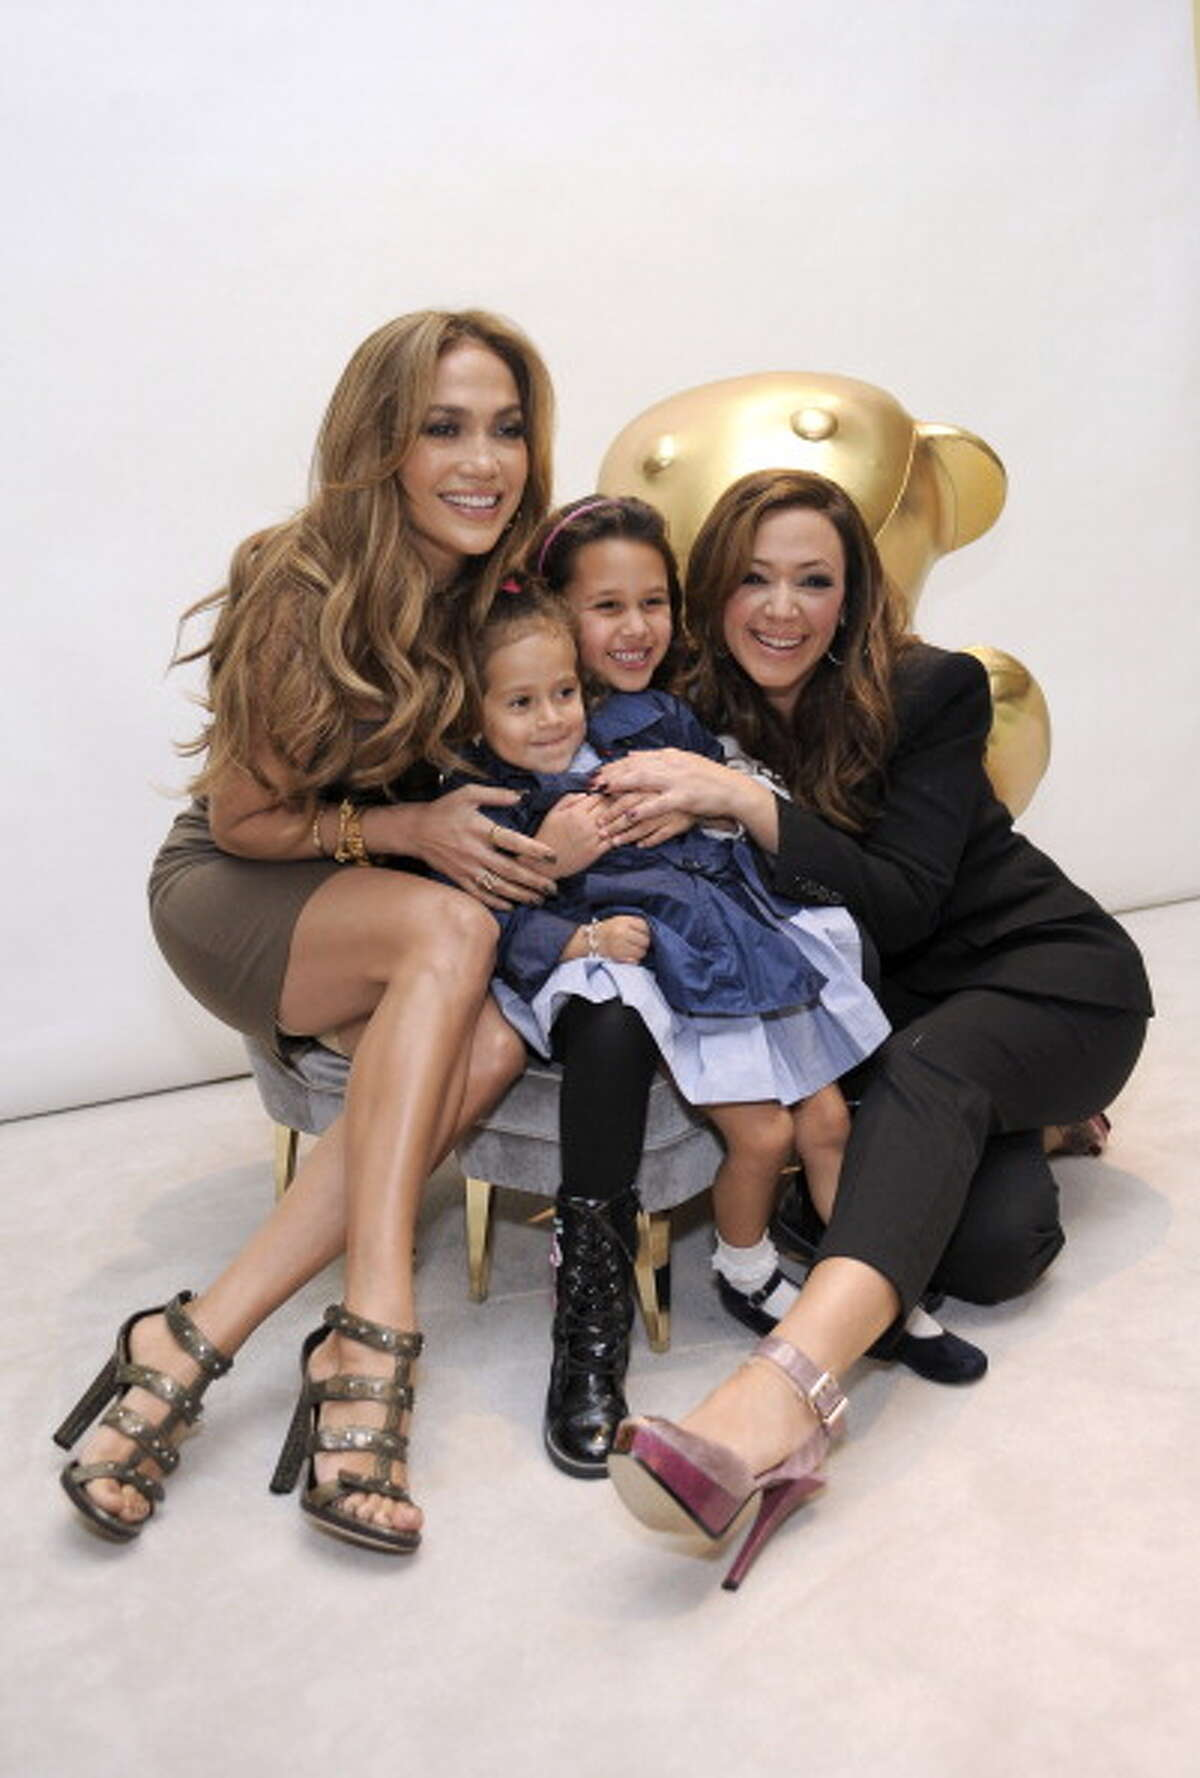 2010: (L-R) Jennifer Lopez, Emme Anthony, Sofia Bella Pagan and Leah Remini attend the Gucci Children's Collection event on November 20, 2010 in Beverly Hills, California.